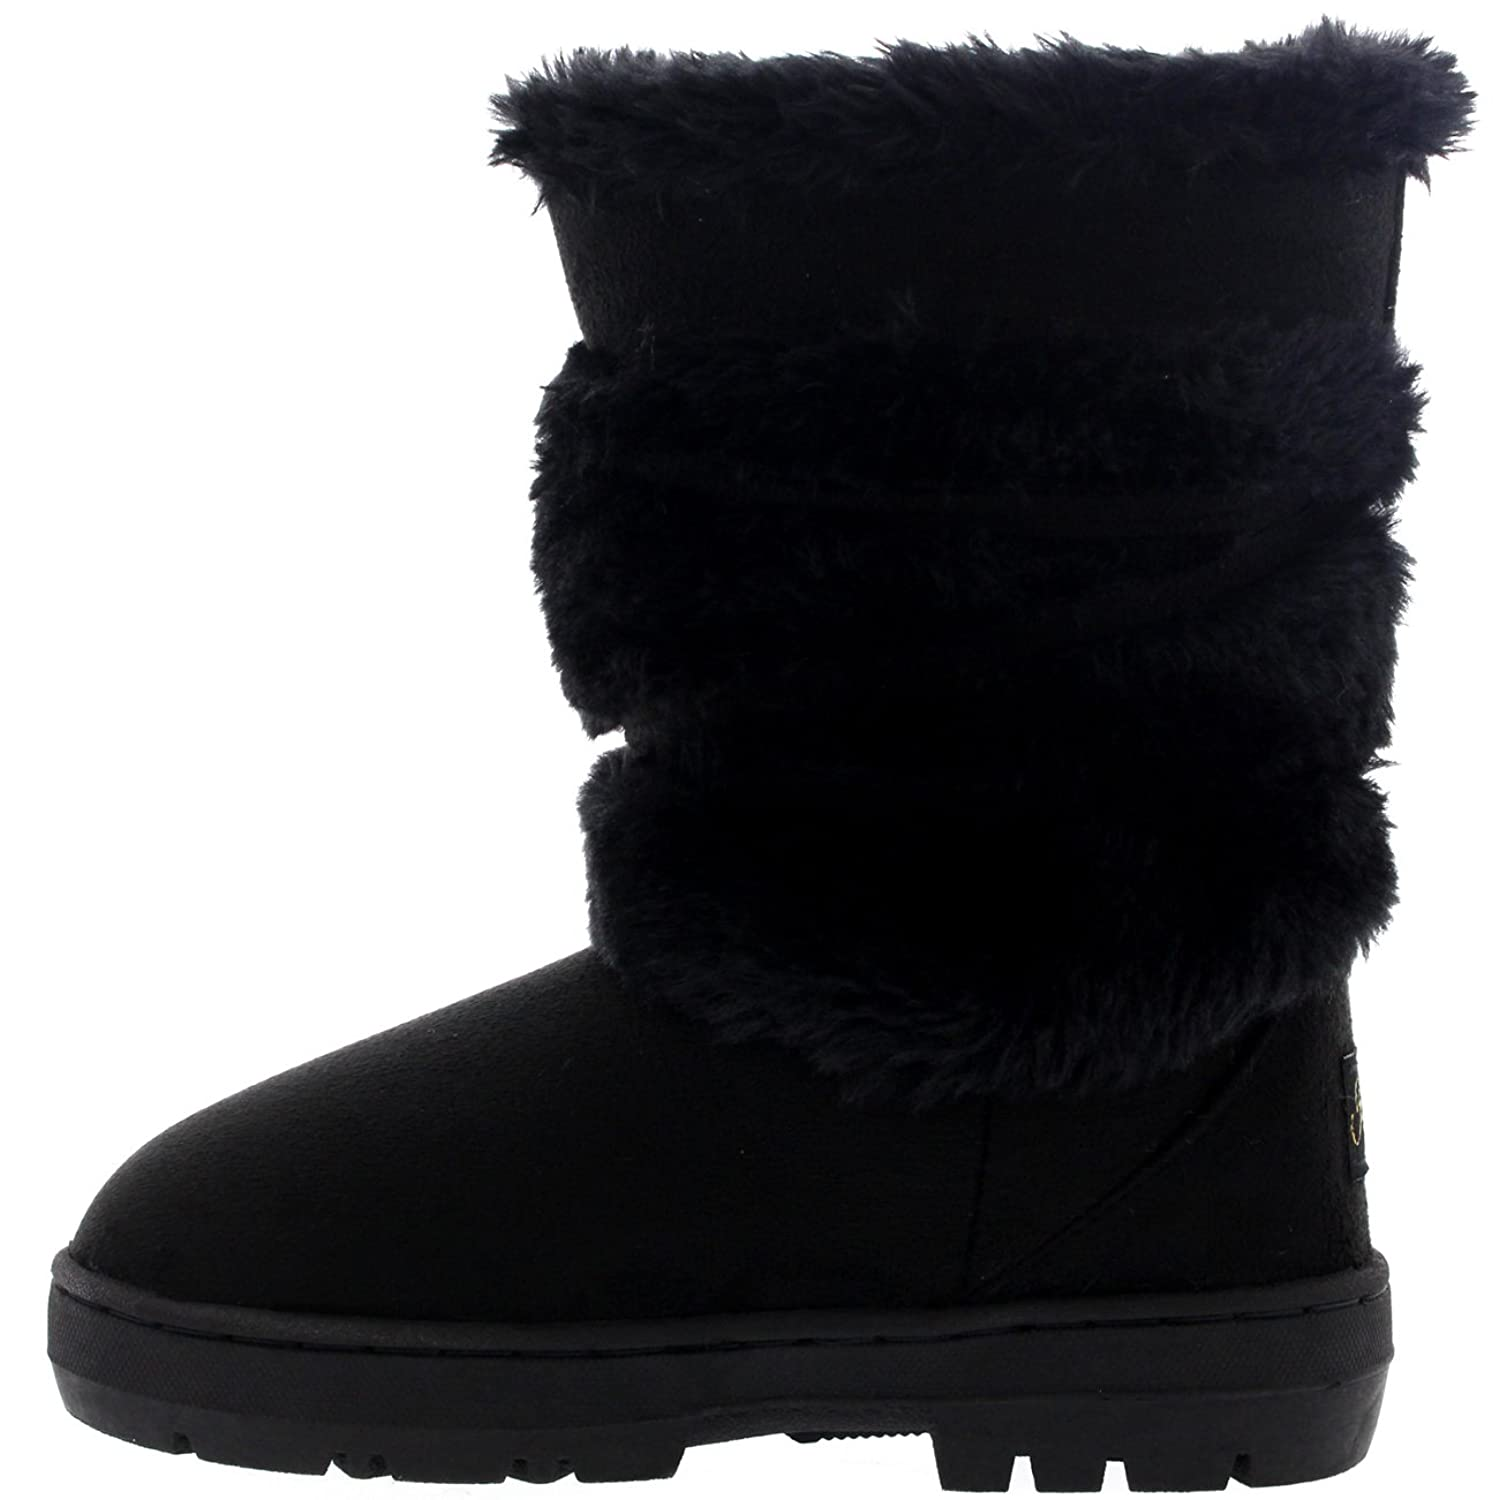 clearance cheapest price Glitter Low Heel Snow Boots - Black 36 discount genuine release dates authentic fast delivery cheap online cheap genuine uVvS4